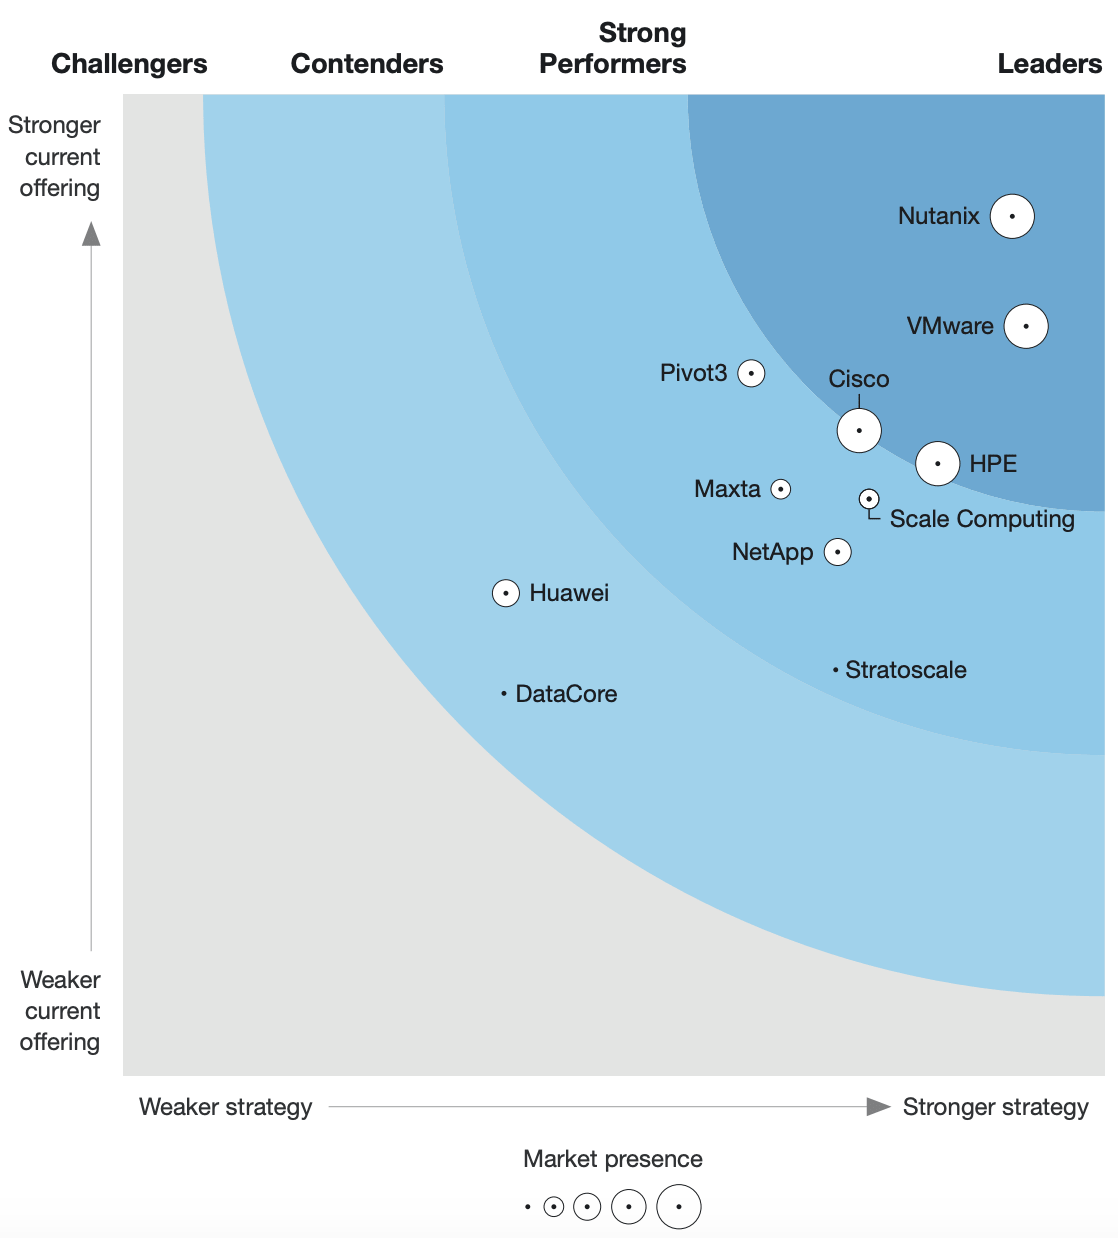 Nutanix vs VMware in the Forrester Wave